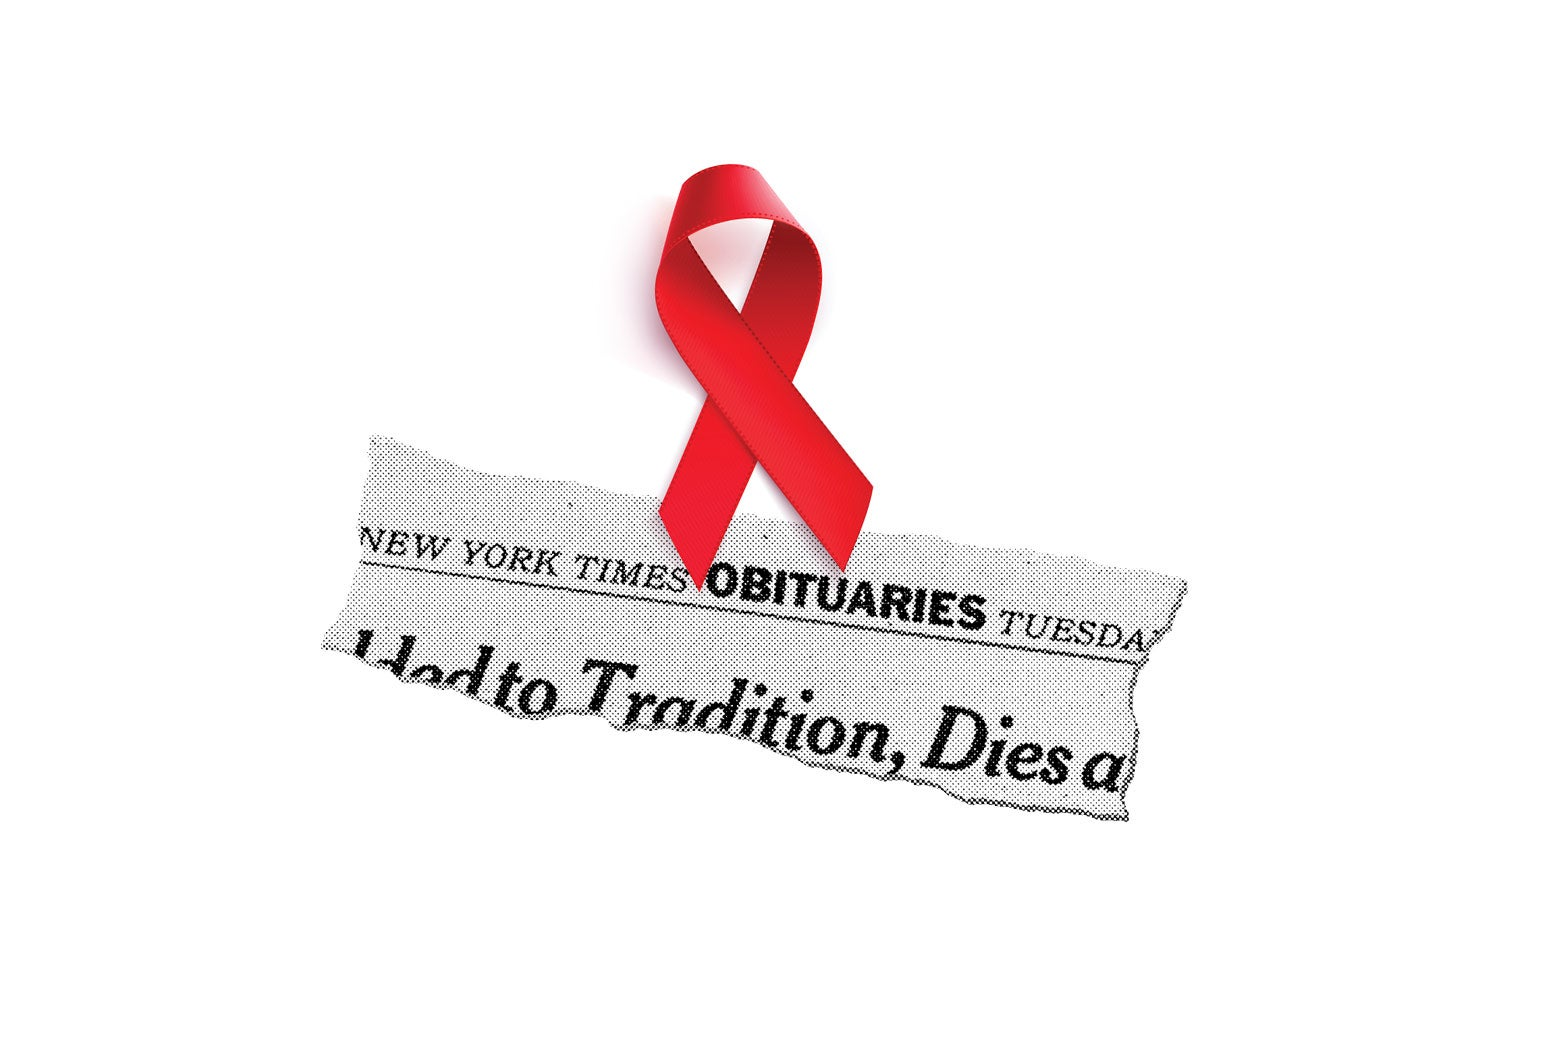 A red AIDS ribbon over a New York Times obit headline.